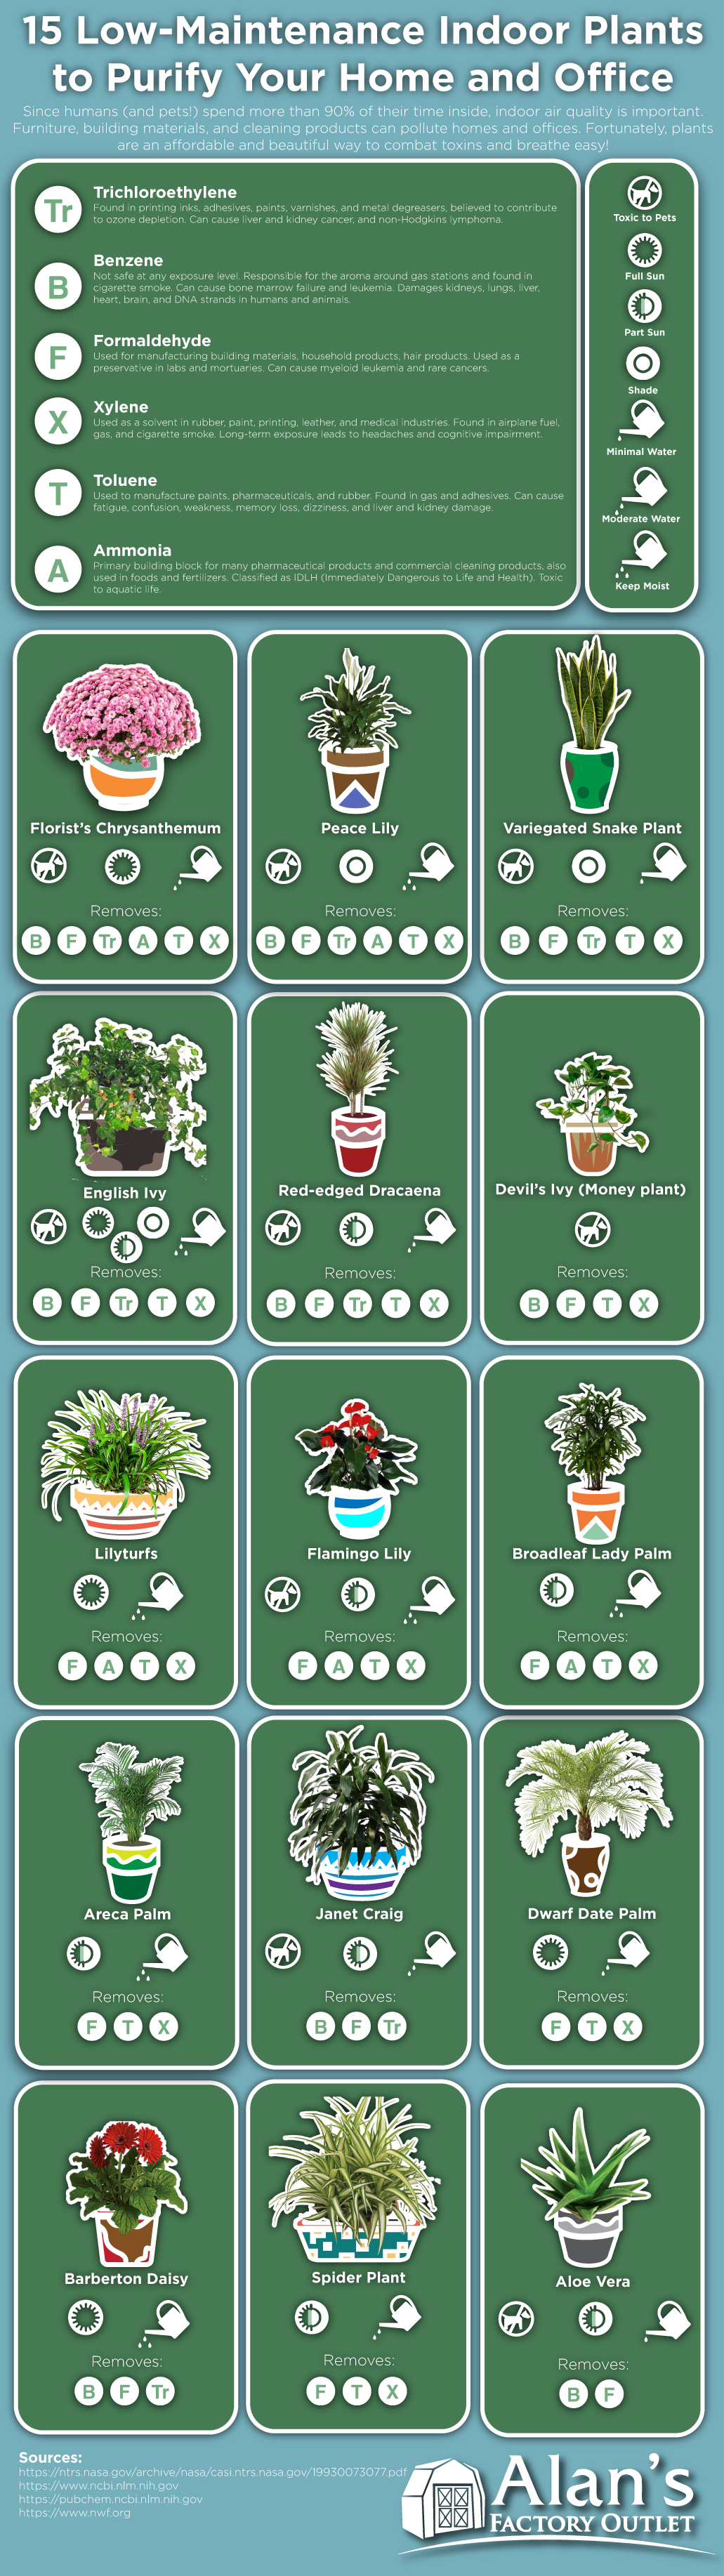 15 Low-Maintenance Indoor Plants to Purify the Air in Your Home or Office #infographic